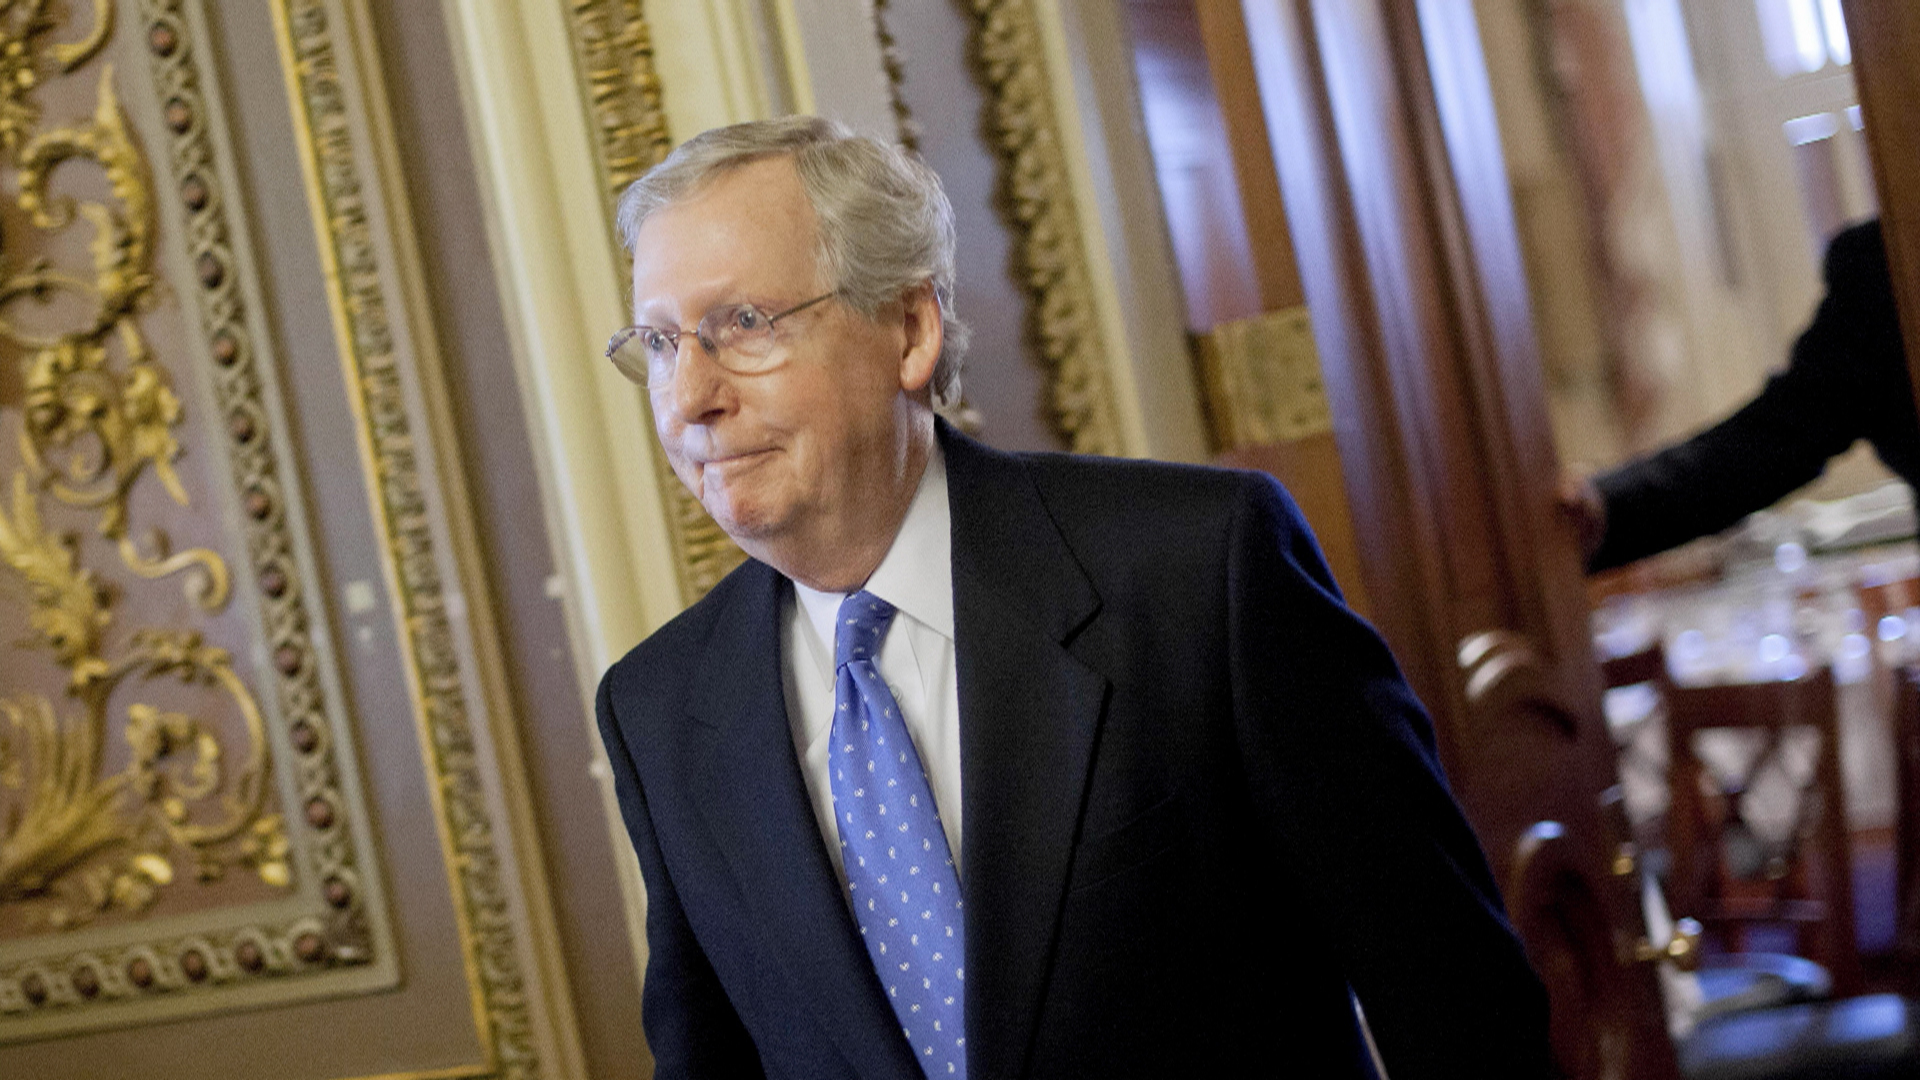 Why is Mitch McConnell in trouble?